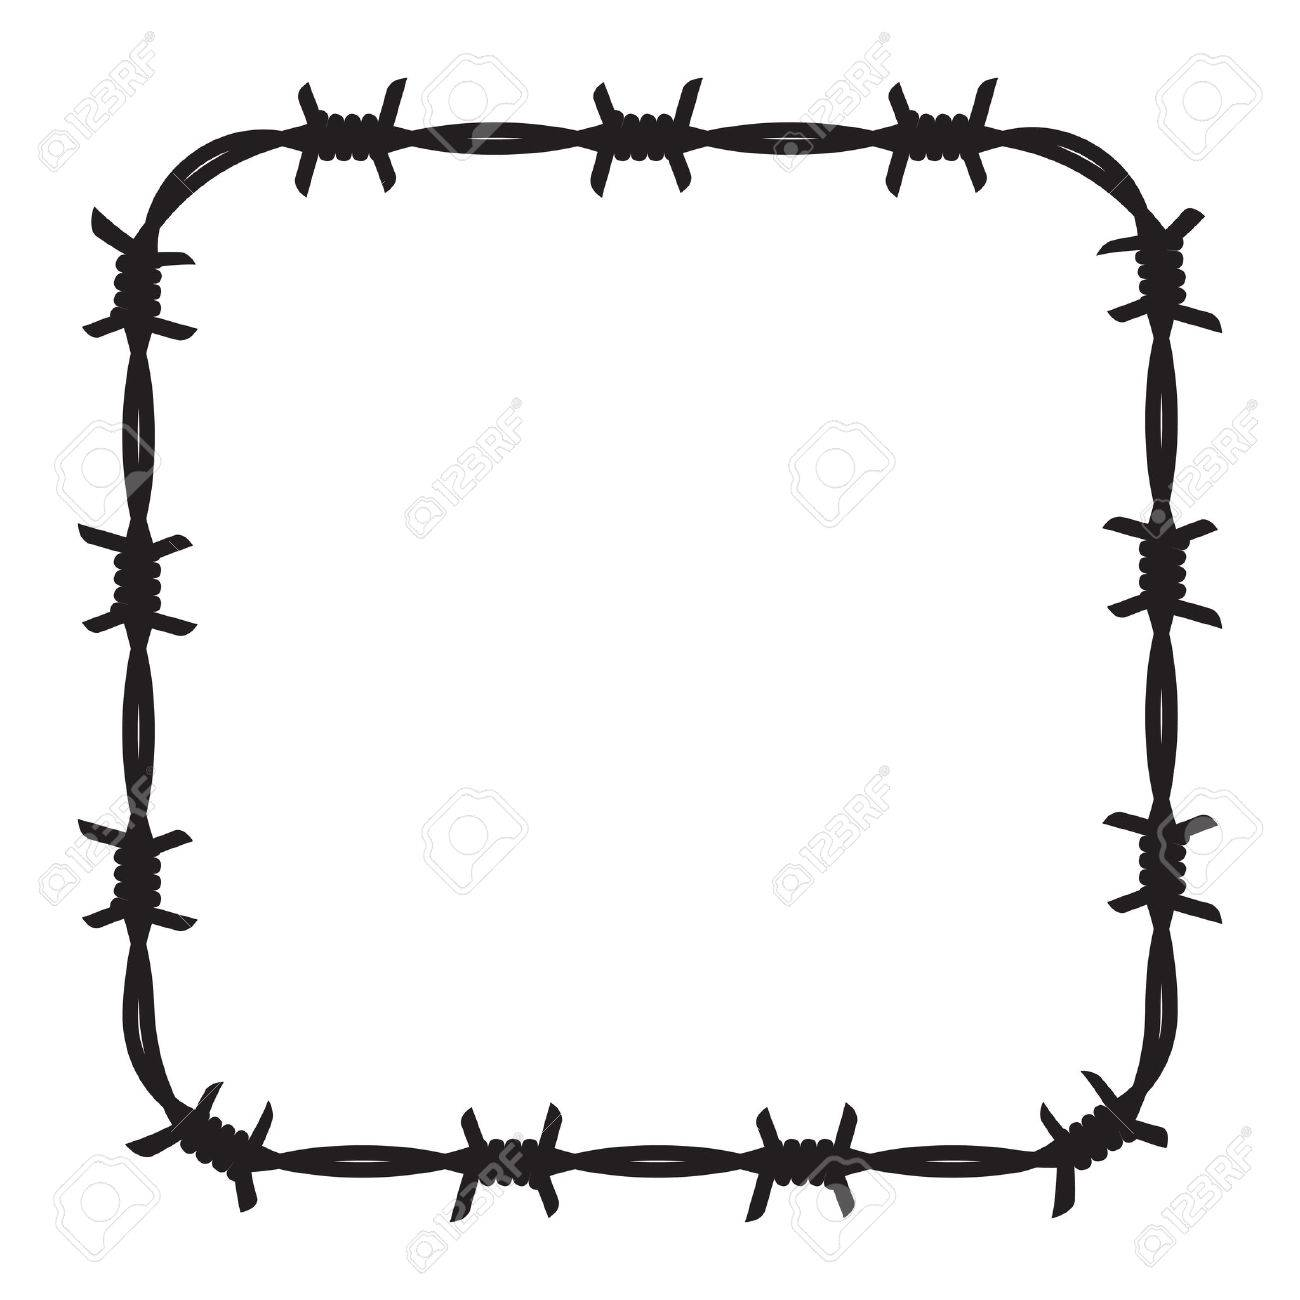 frame barbed wire royalty free cliparts vectors and stock rh 123rf com barb wire vector free barbed wire vector art free